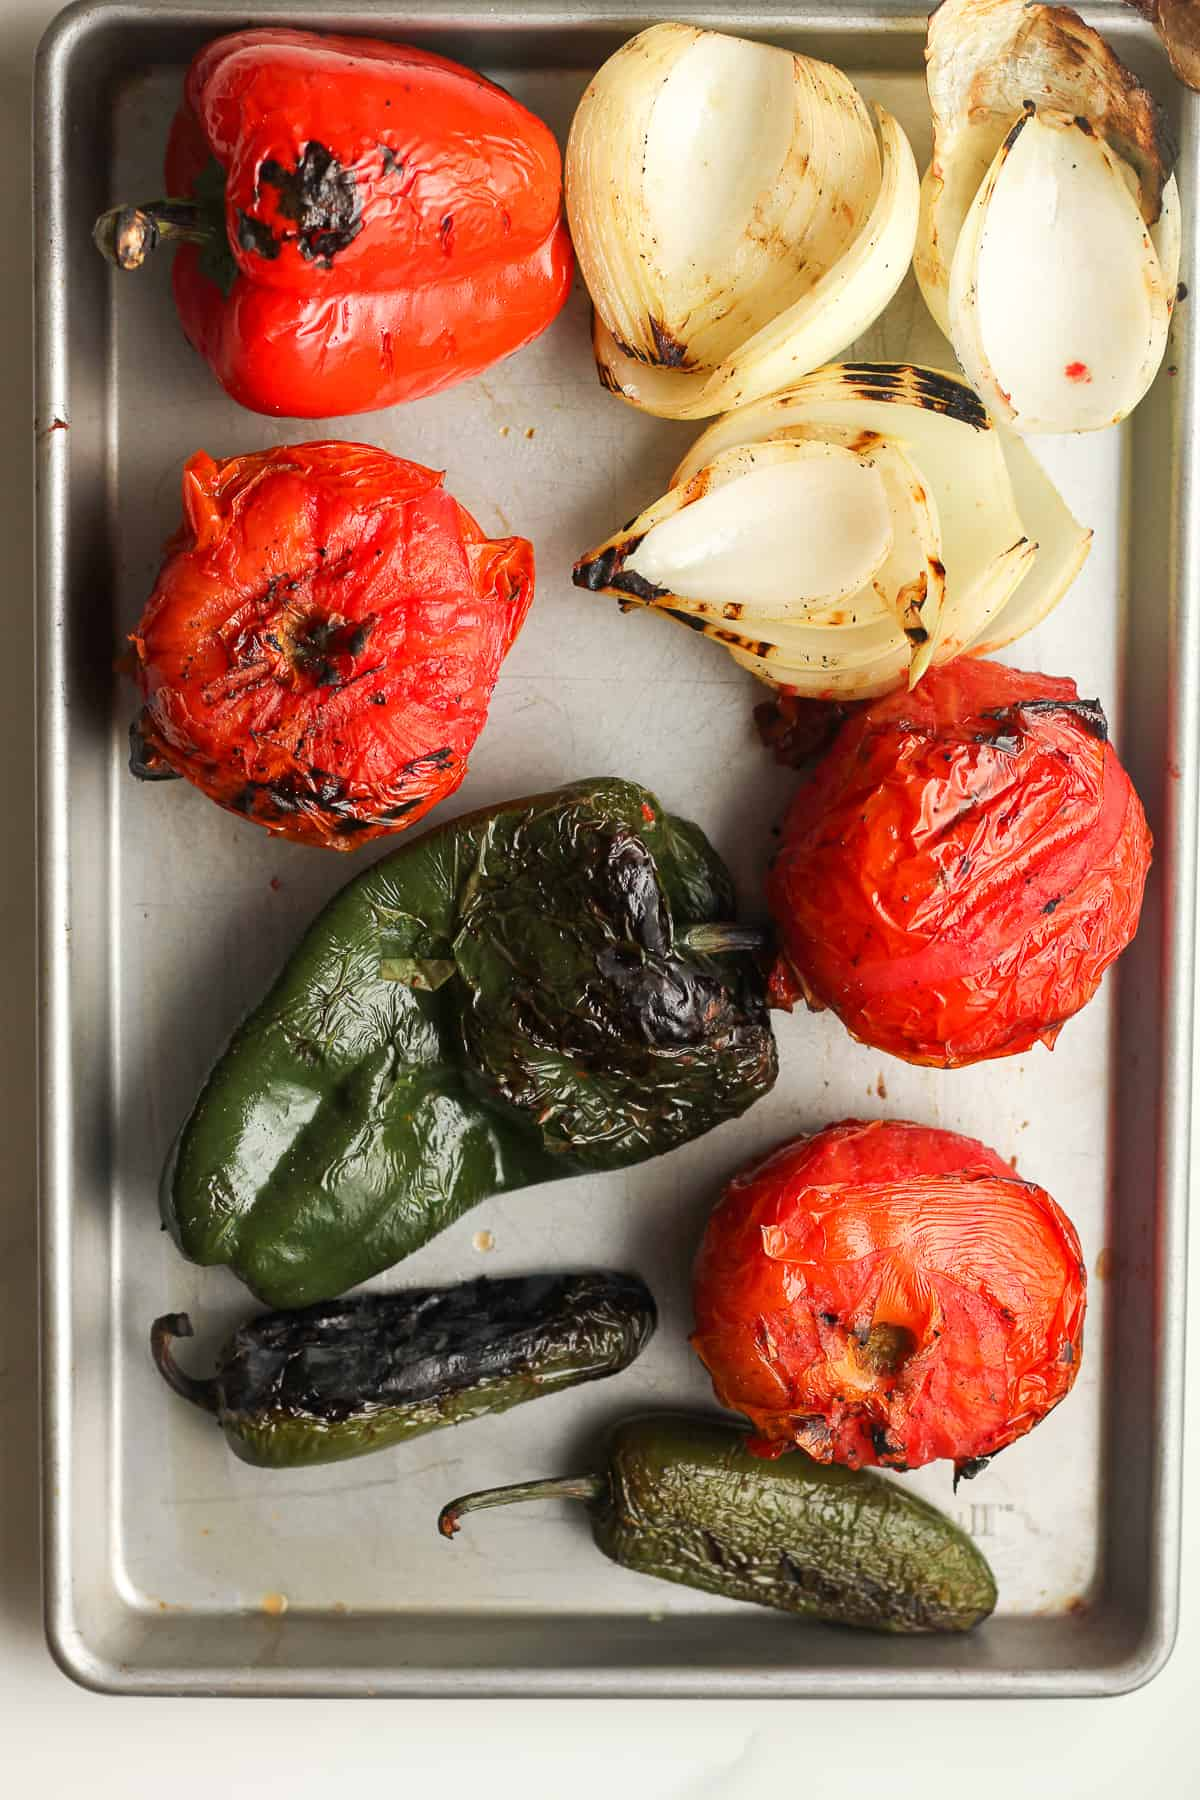 A sheet pan with the grilled veggies.